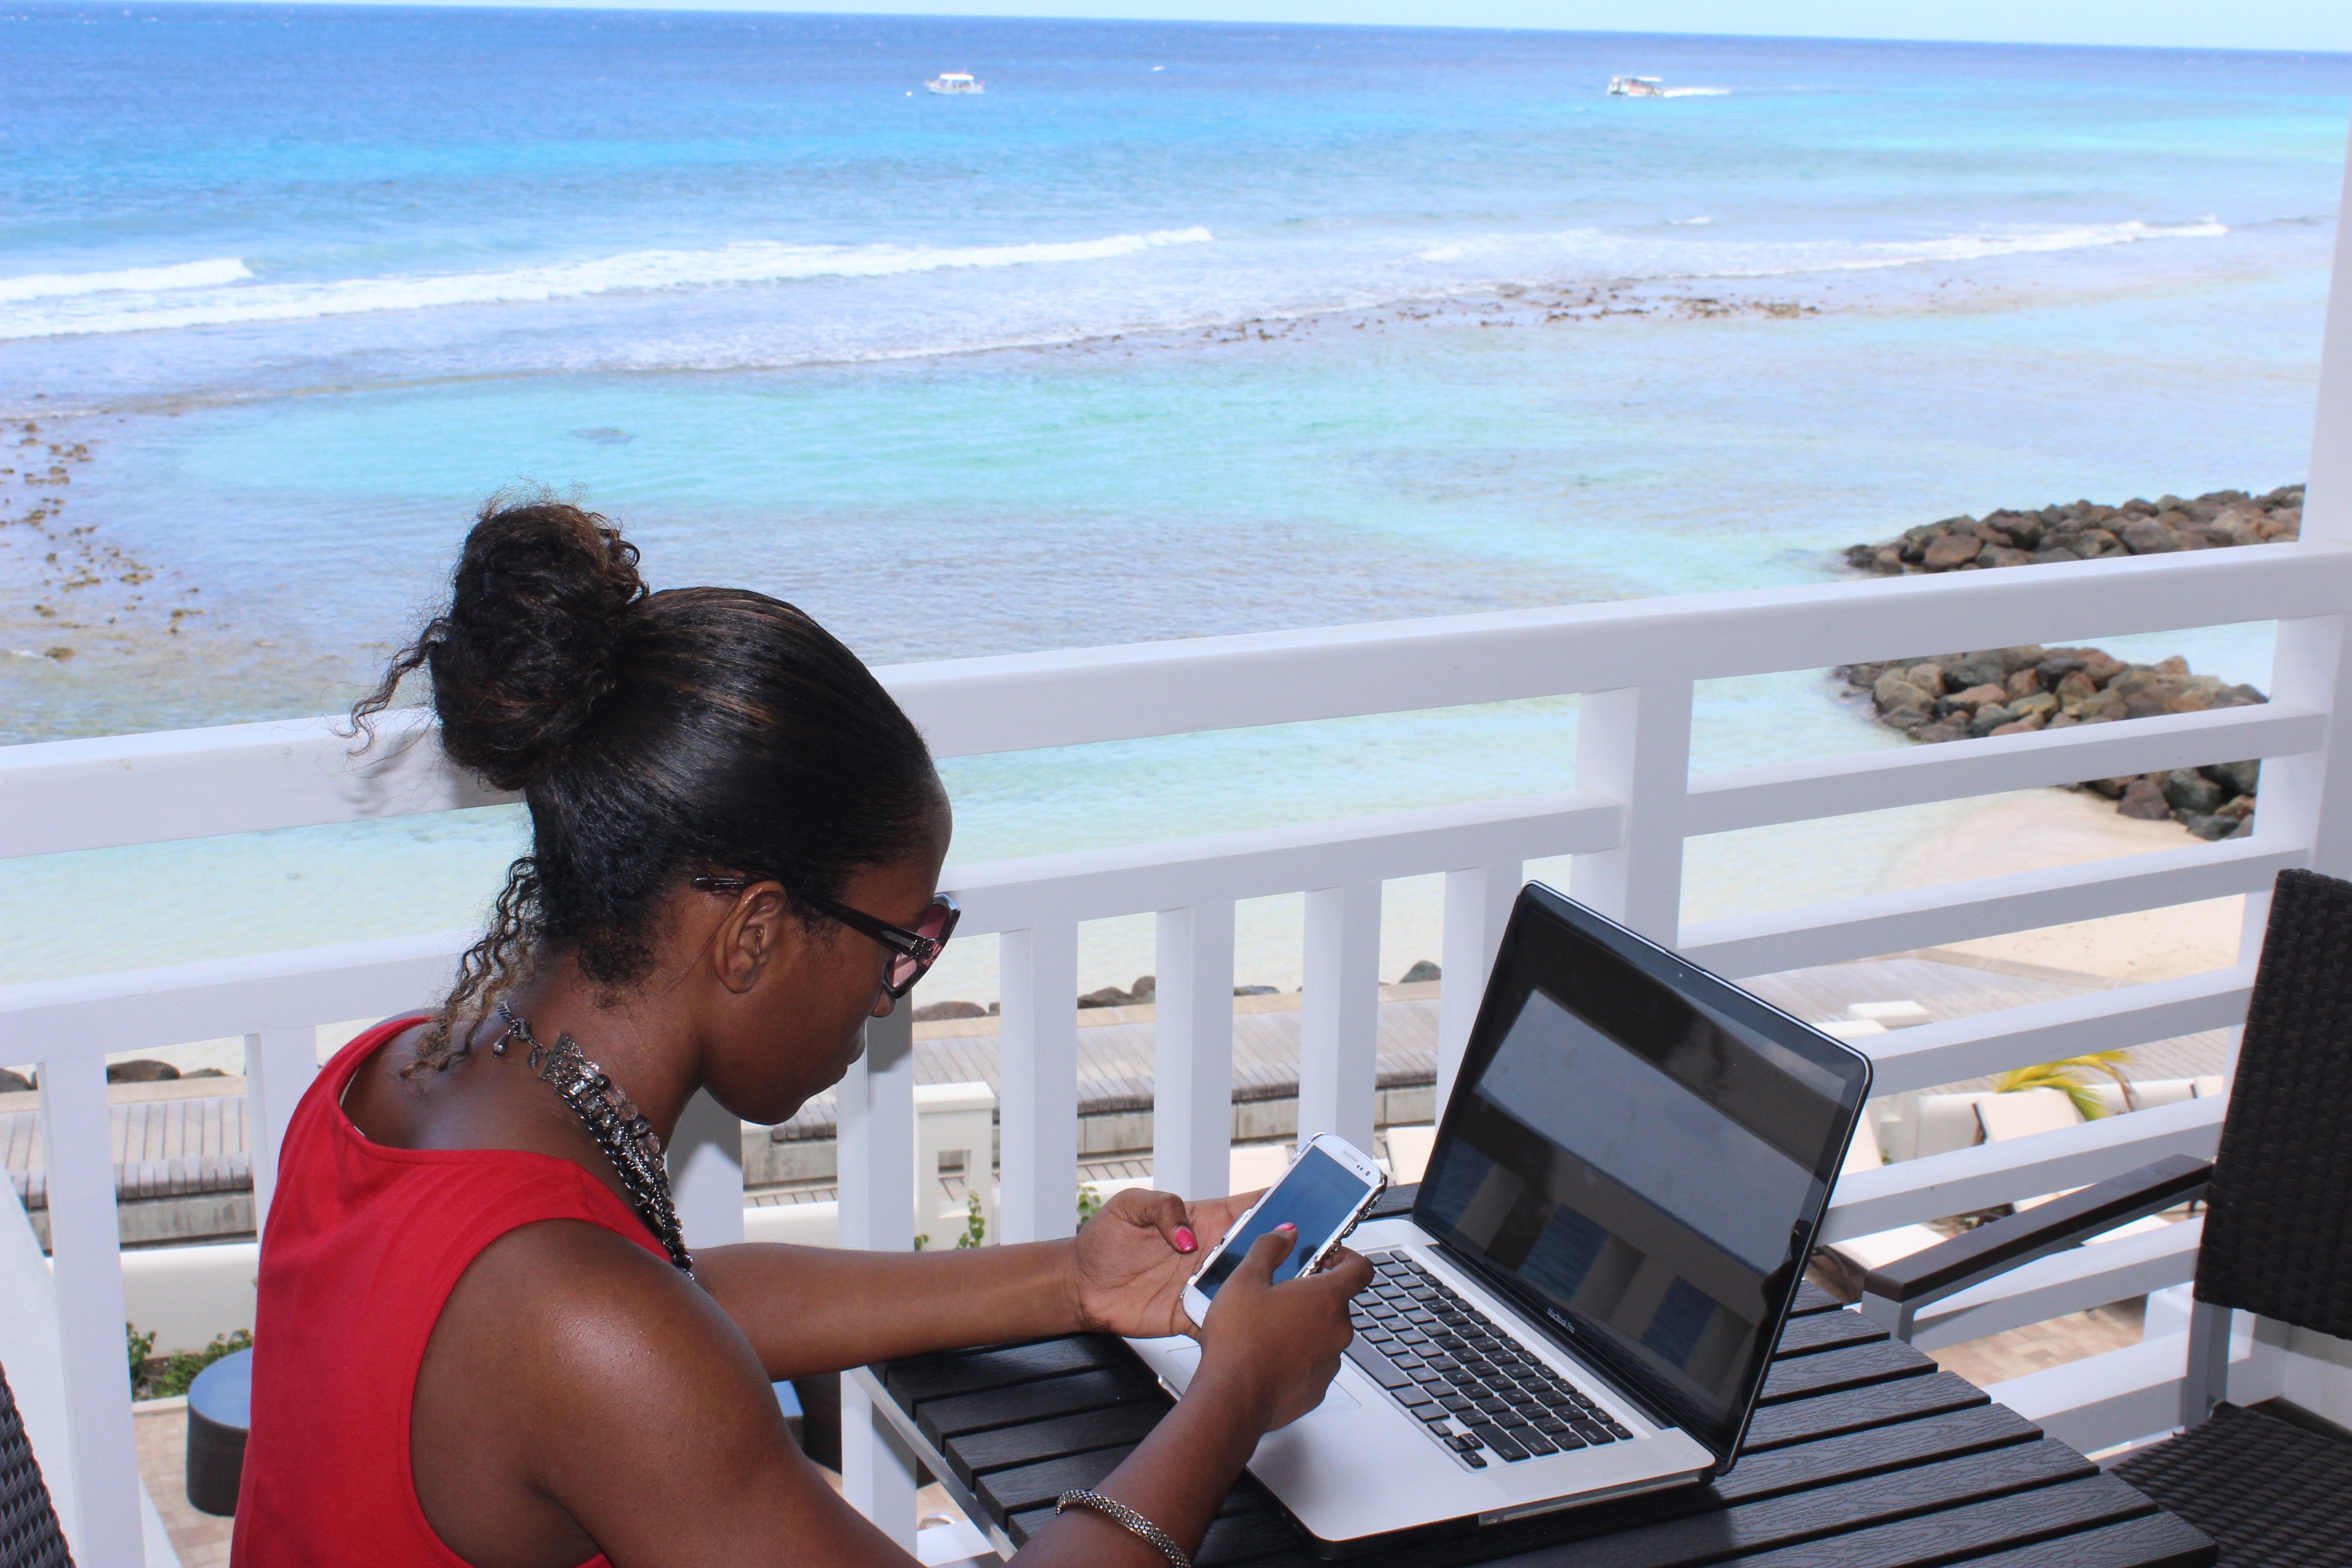 Whether for work or pleasure the SoCo Hotel boasts one of the best views in Barbados.  #Barbados #vacation